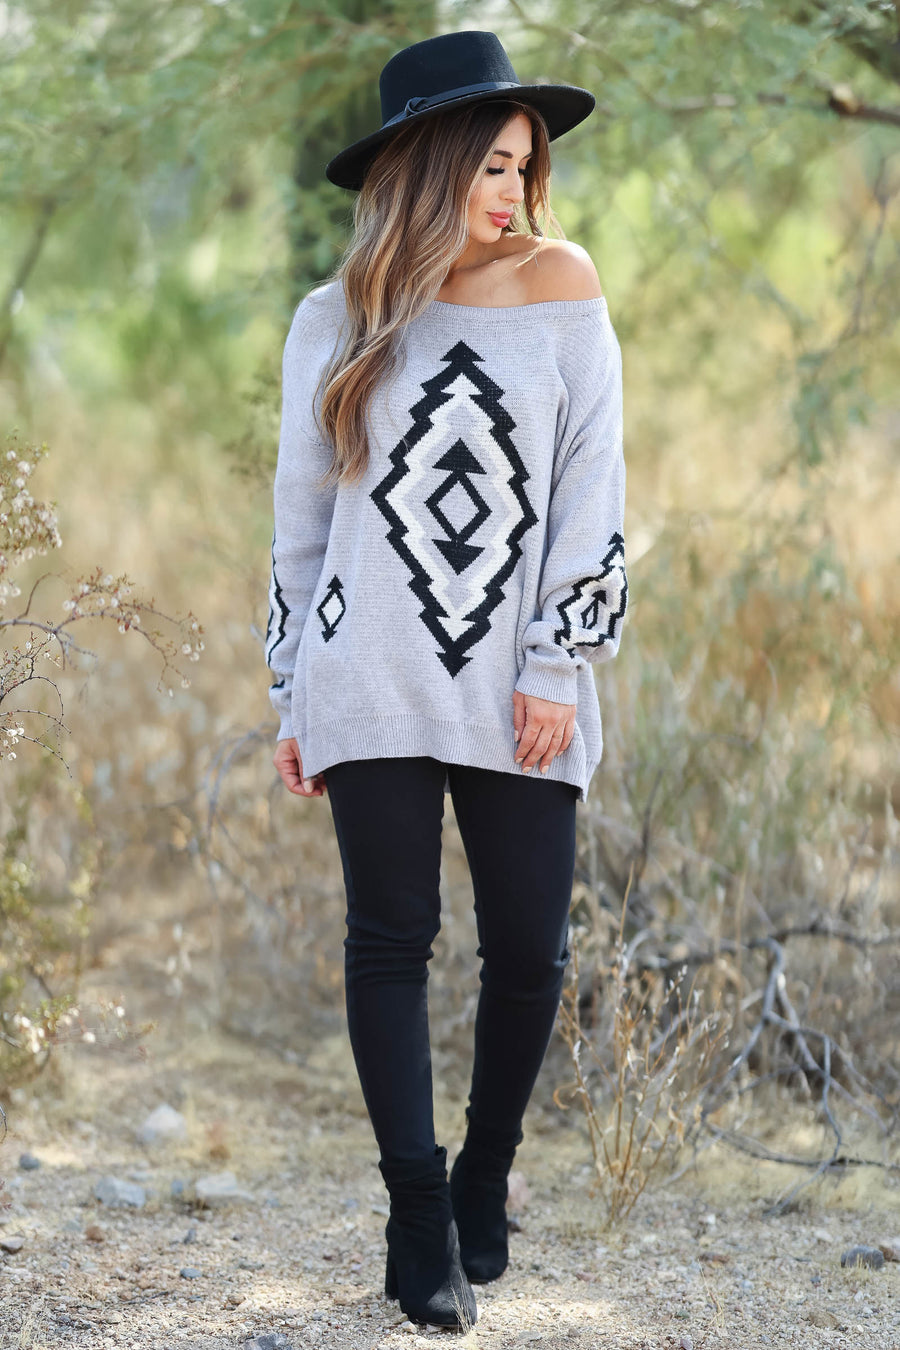 This Is It Aztec Sweater - Grey womens trendy  aztec print knit sweater closet candy front